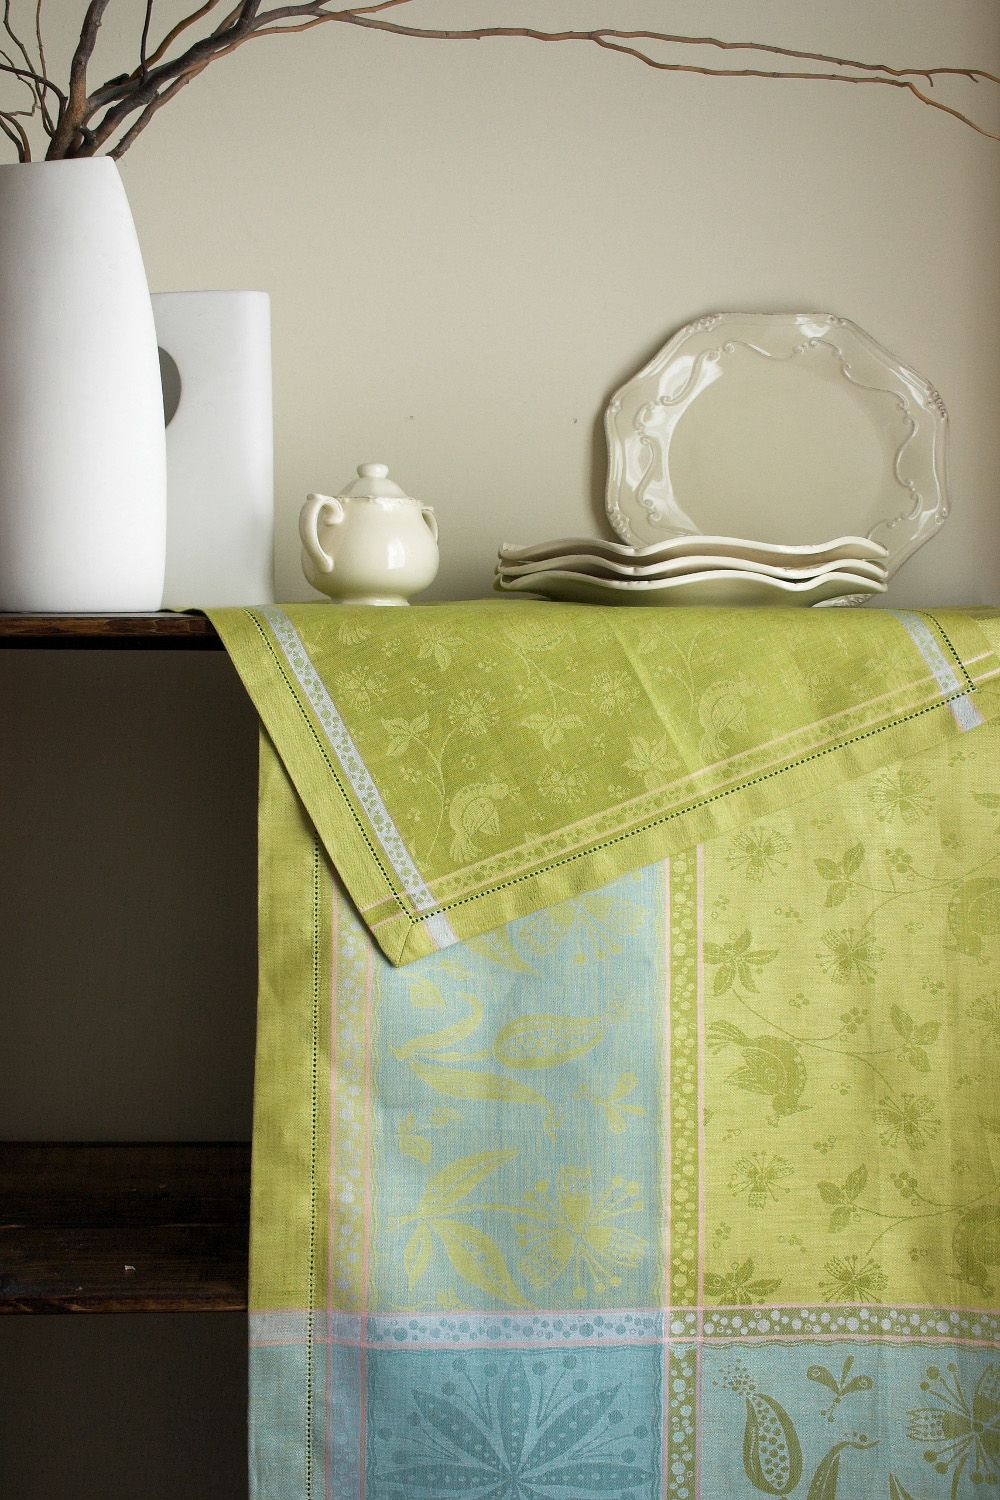 #LinenWay #Linen #Napkin #LinenNapkin #Hemstitching #Colorful Napkin #Olive Green Napkin